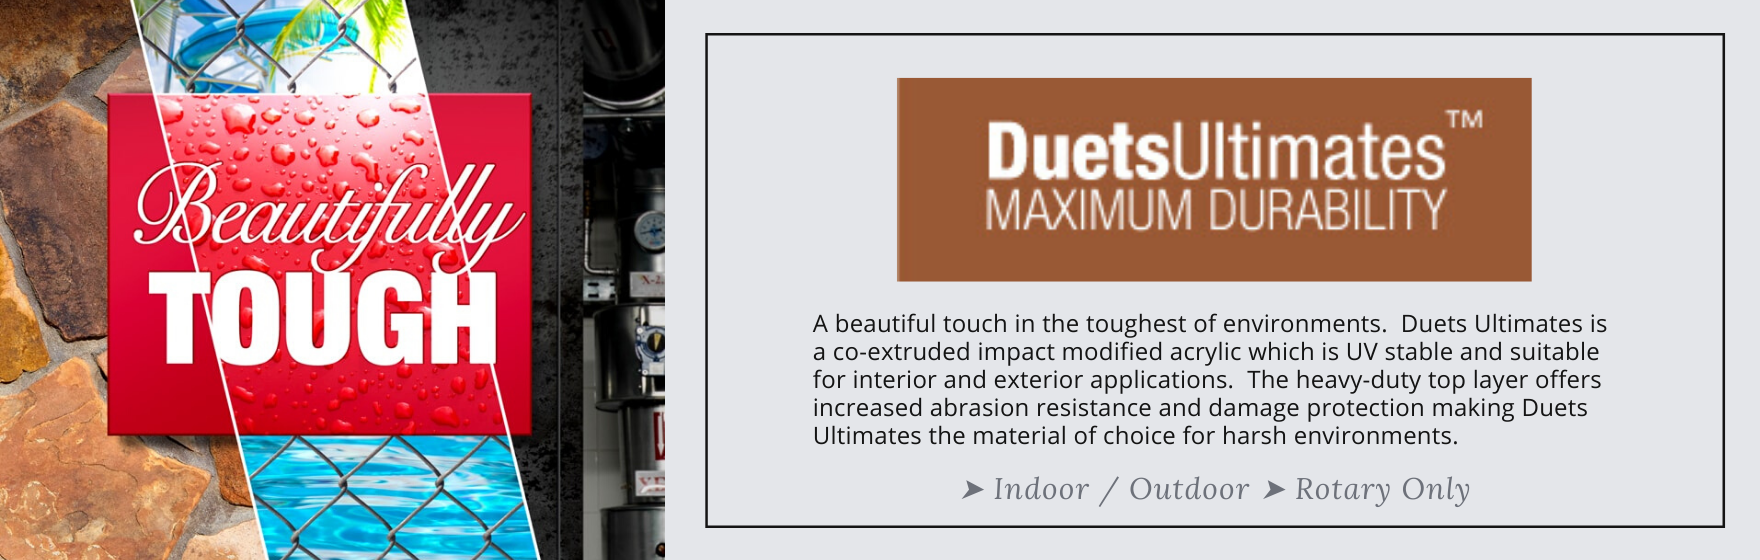 Duets Ultimates